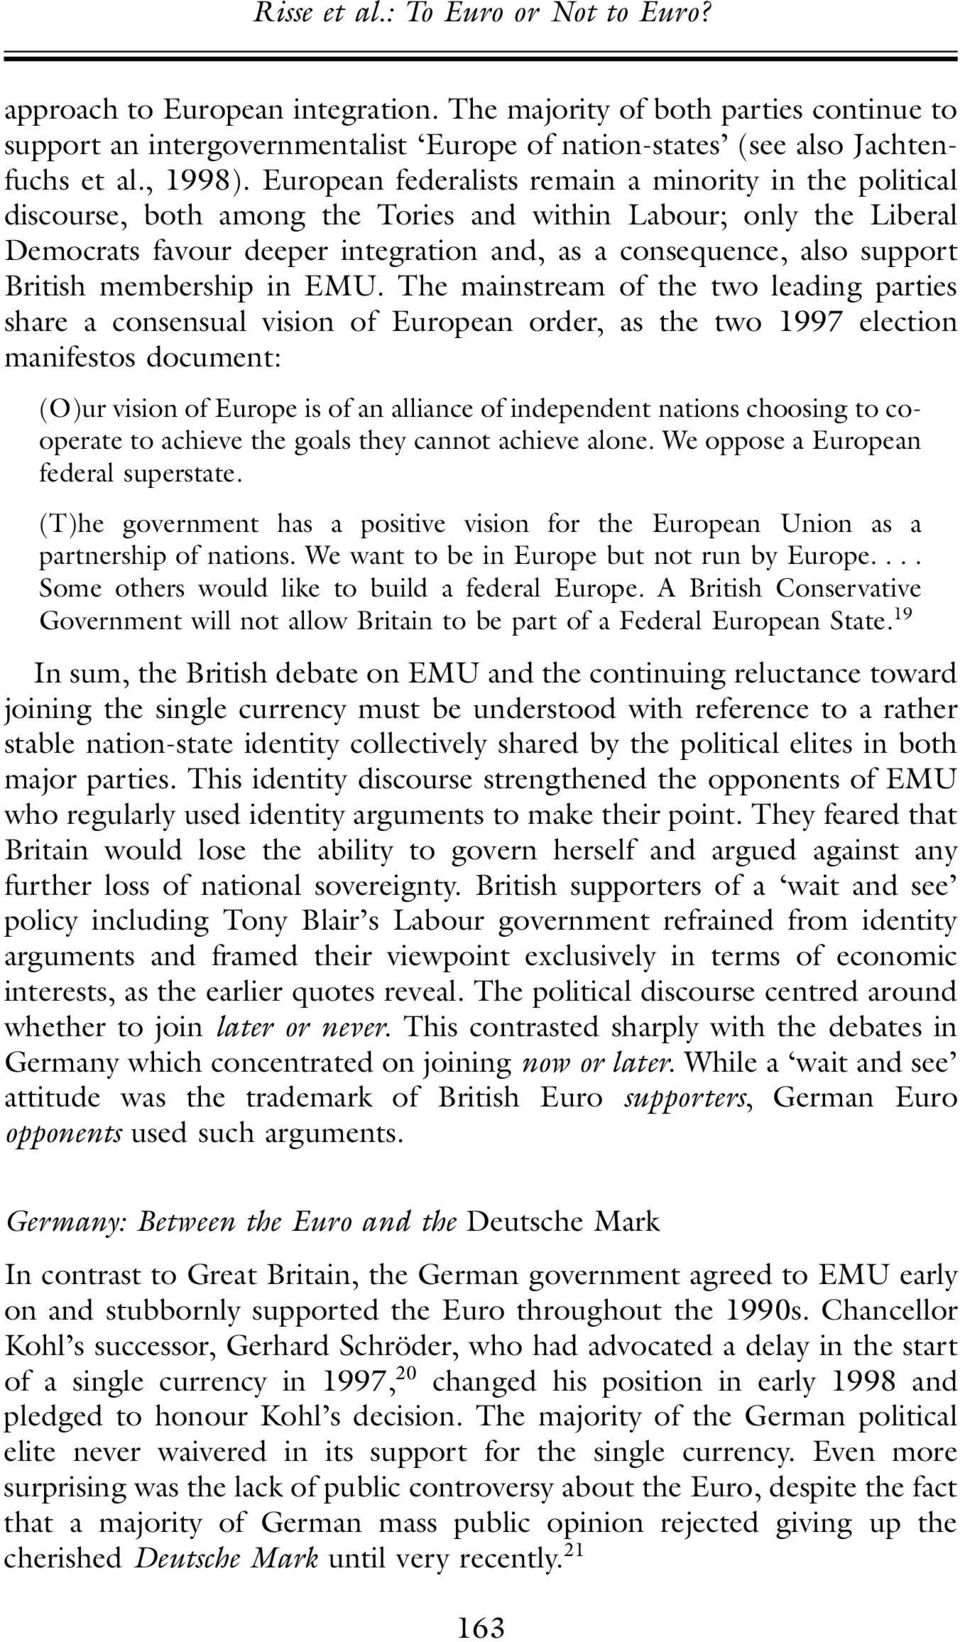 European federalists remain a minority in the political discourse, both among the Tories and within Labour; only the Liberal Democrats favour deeper integration and, as a consequence, also support